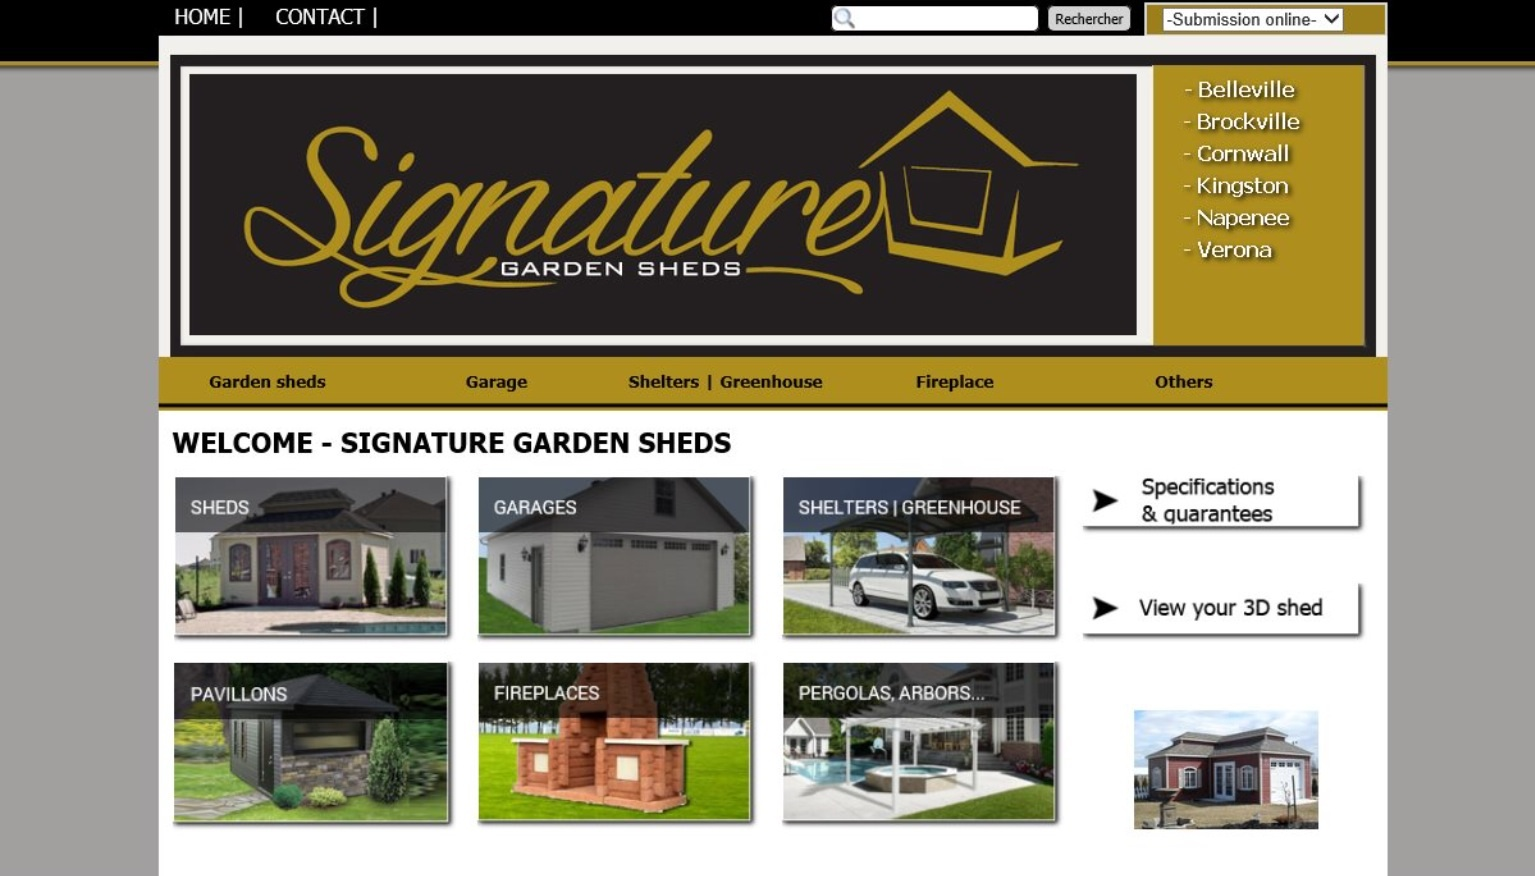 Signature Garden Shed